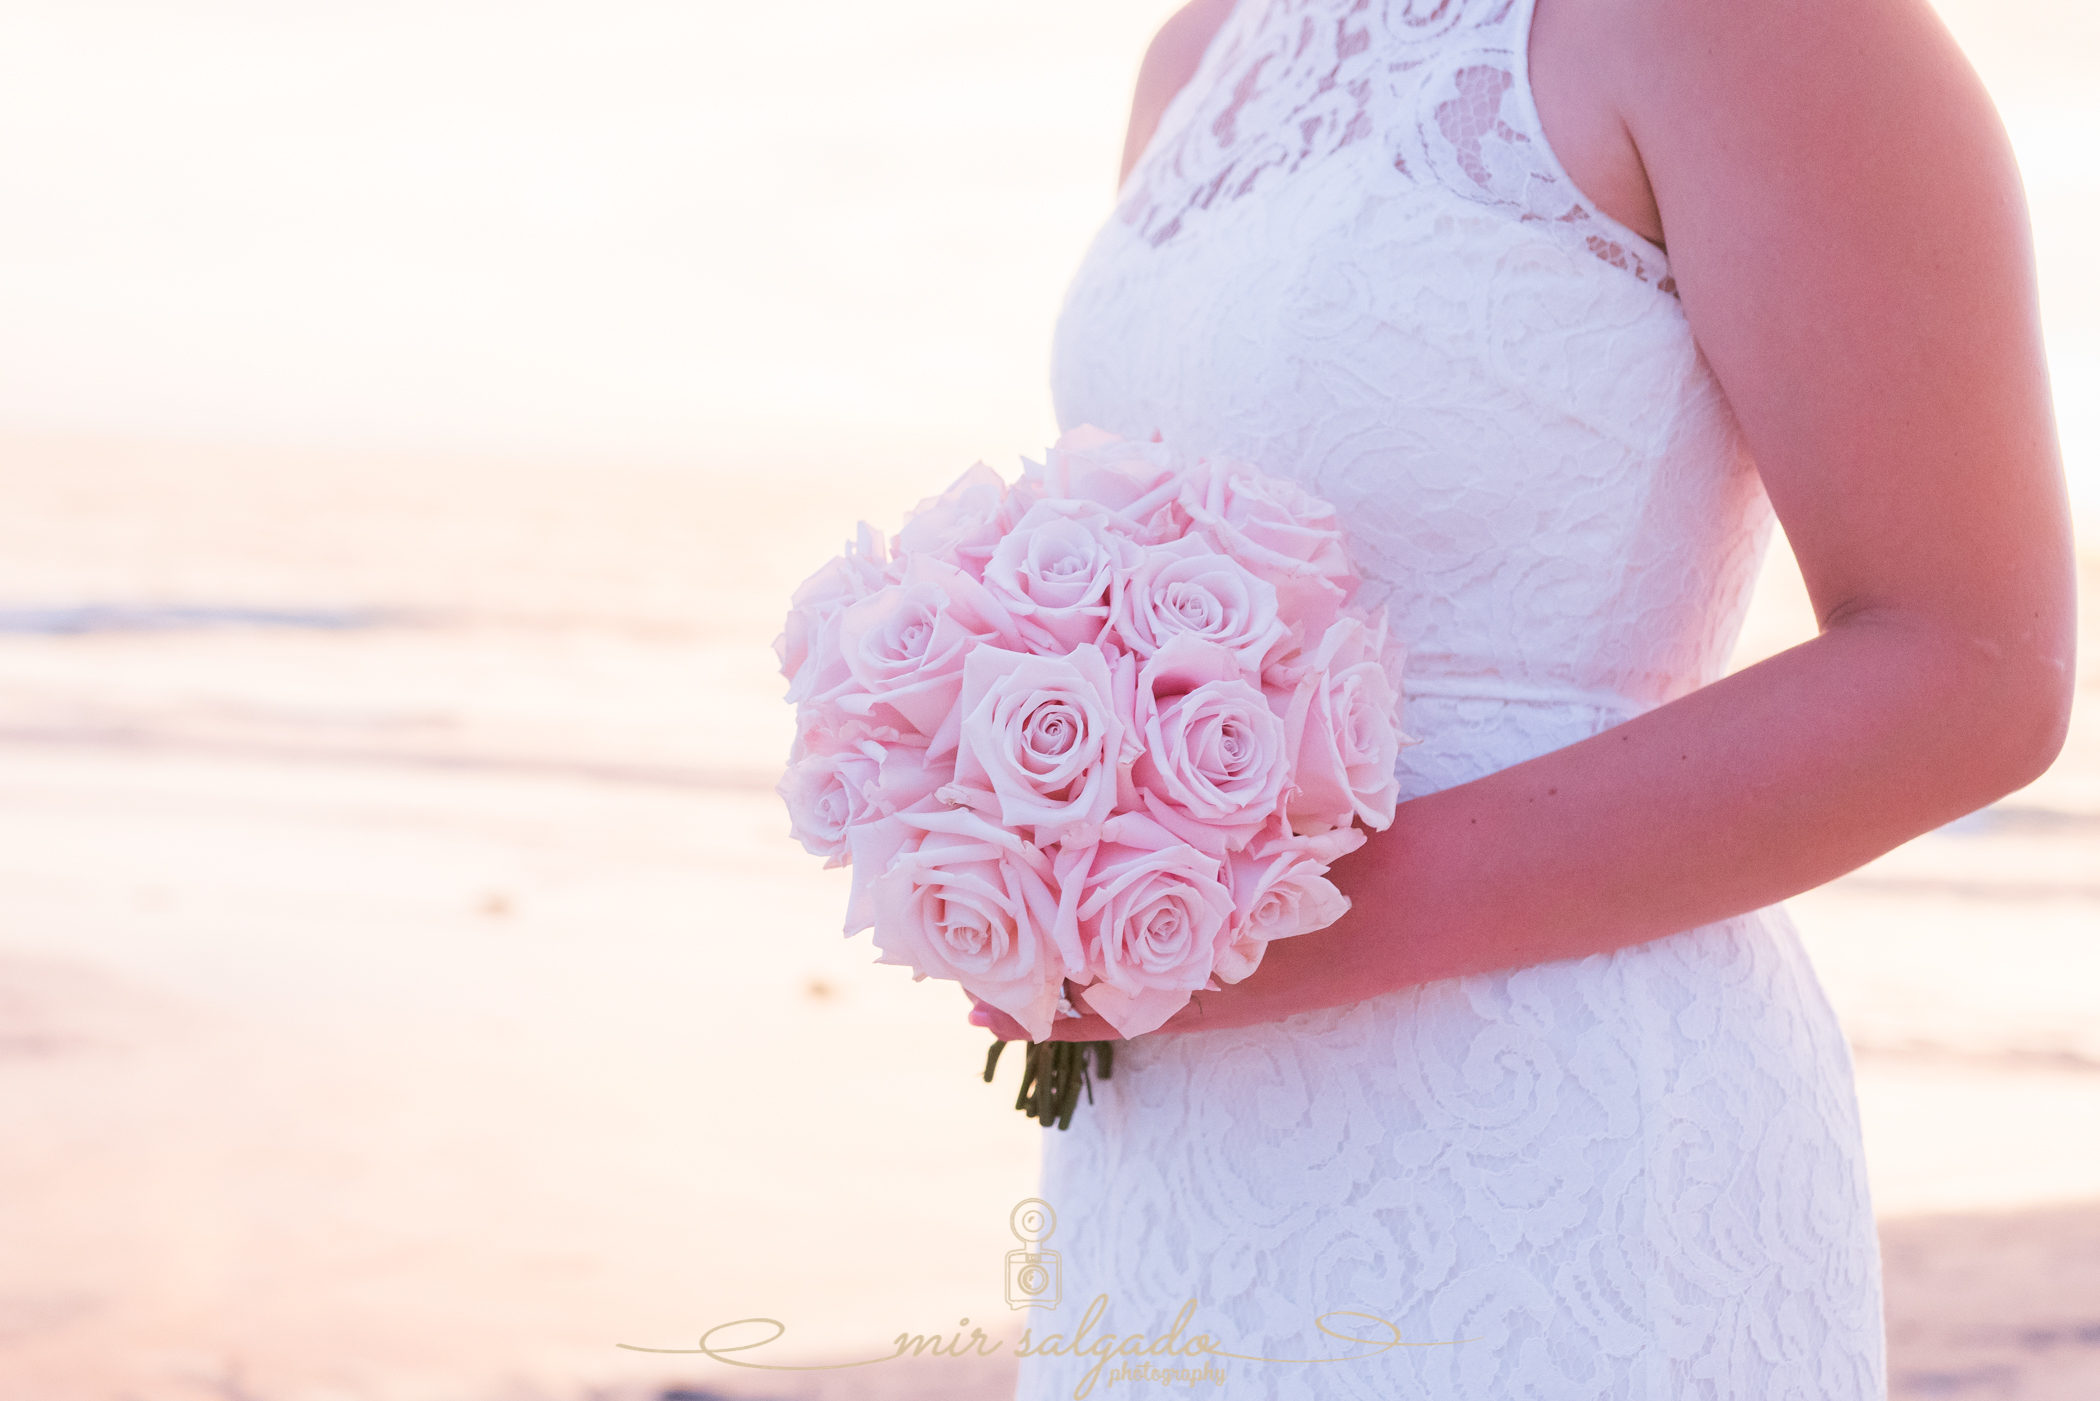 wedding-bouquet, wedding-flowers, pink-wedding-bouquet, summer-wedding-flowers, summer-wedding, summer-flowers